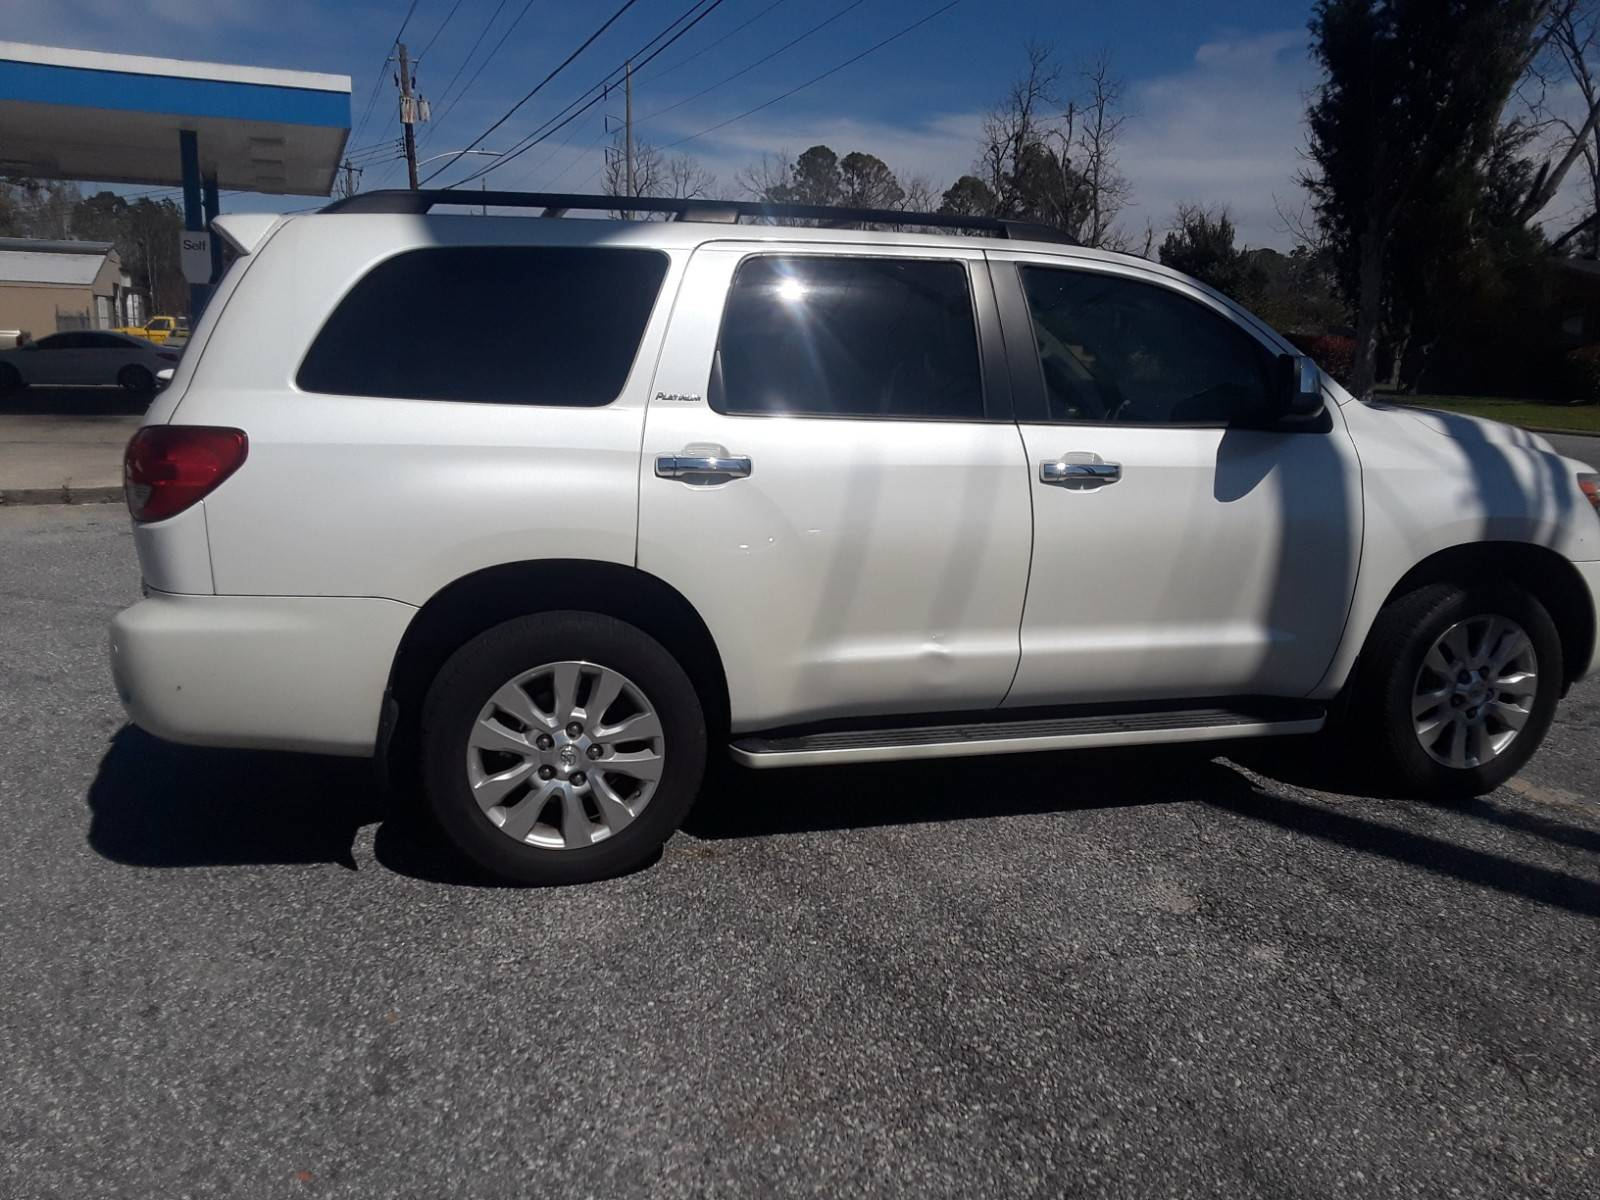 5TDYY5G10DS045286 - 2013 Toyota Sequoia Pl 5.7L rear view